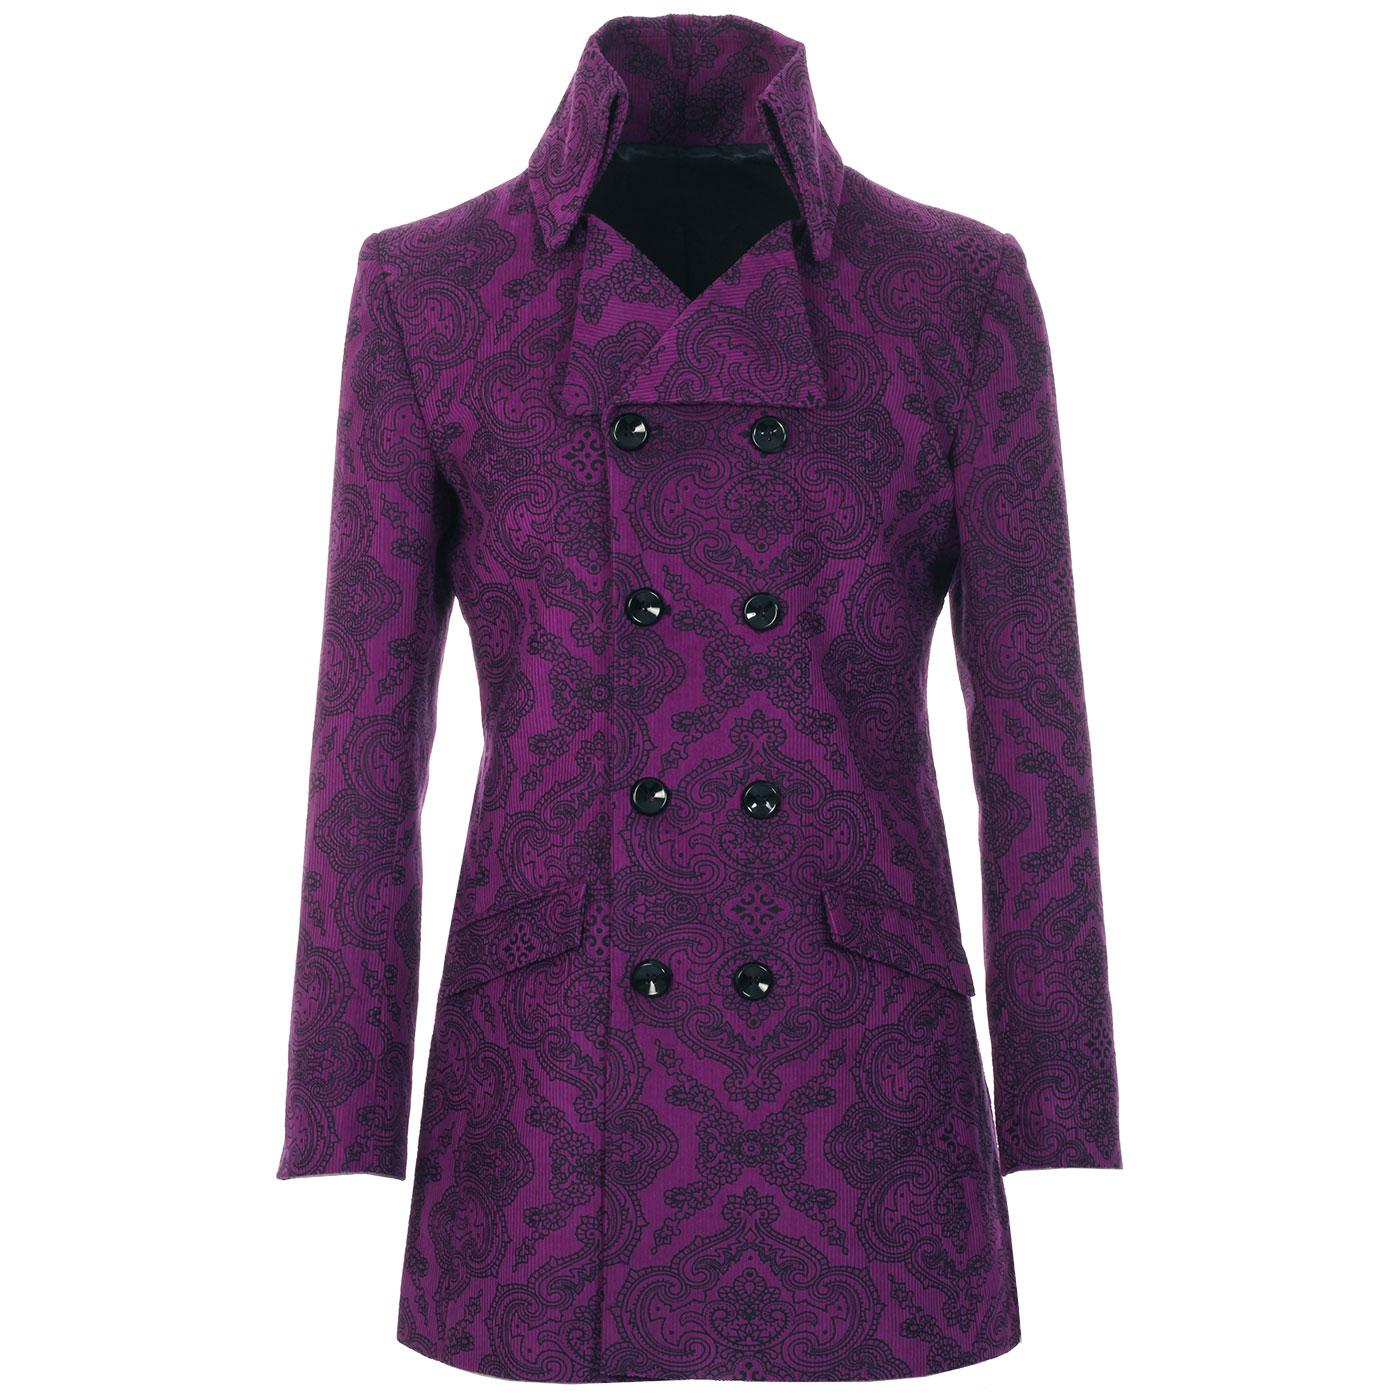 Paisley In Crowd MADCAP ENGLAND 60s Cord Jacket G